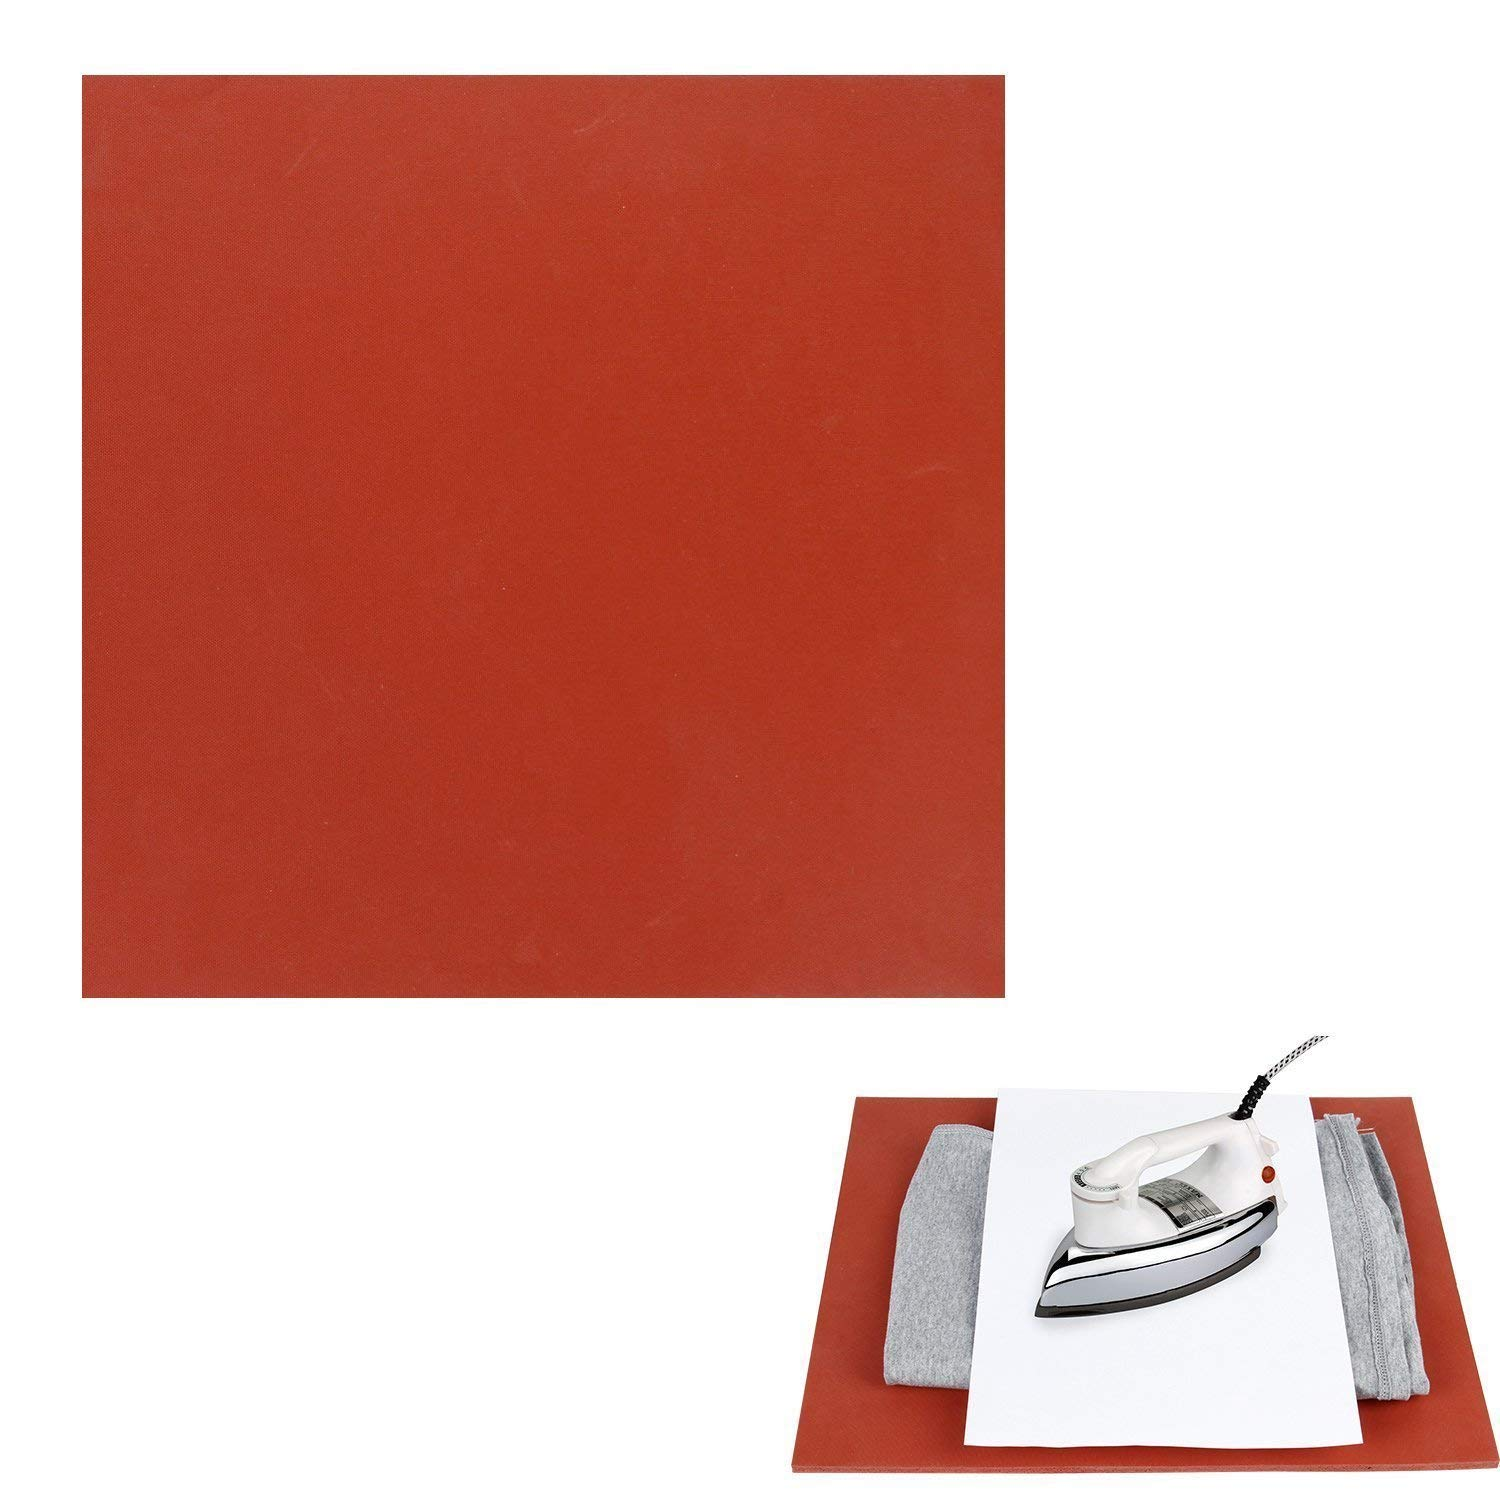 Porfiya Multipurpose Use Silicone Pad For Flat Heat Press Printing Machine Replacement High Temperature Resistance And Extra Thick Silica Gel Rubber Baking Mat,12 by 15 Inches (Red)